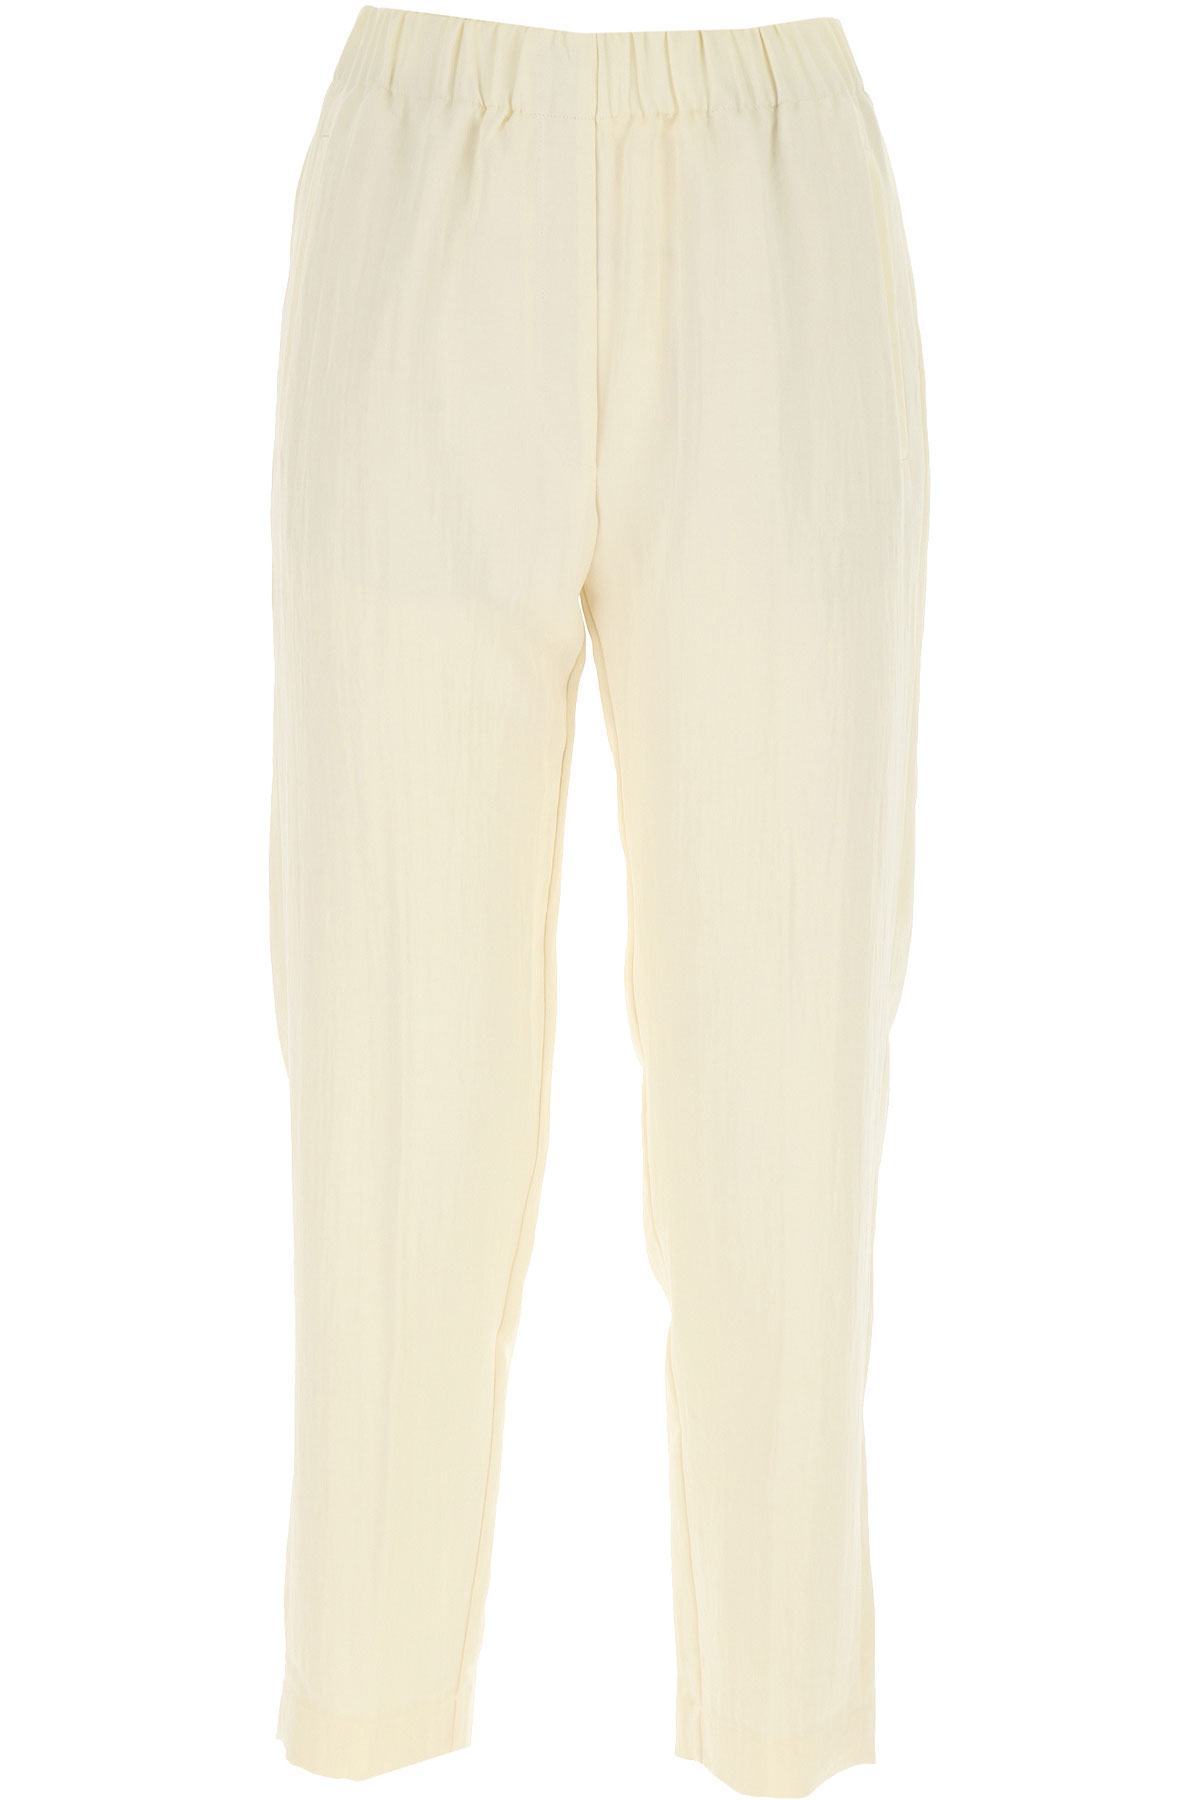 Forte Forte Pants for Women On Sale, Butter, Modal, 2019, 0 - XS - IT 38 2 - M - IT 42 3 - L - IT 44